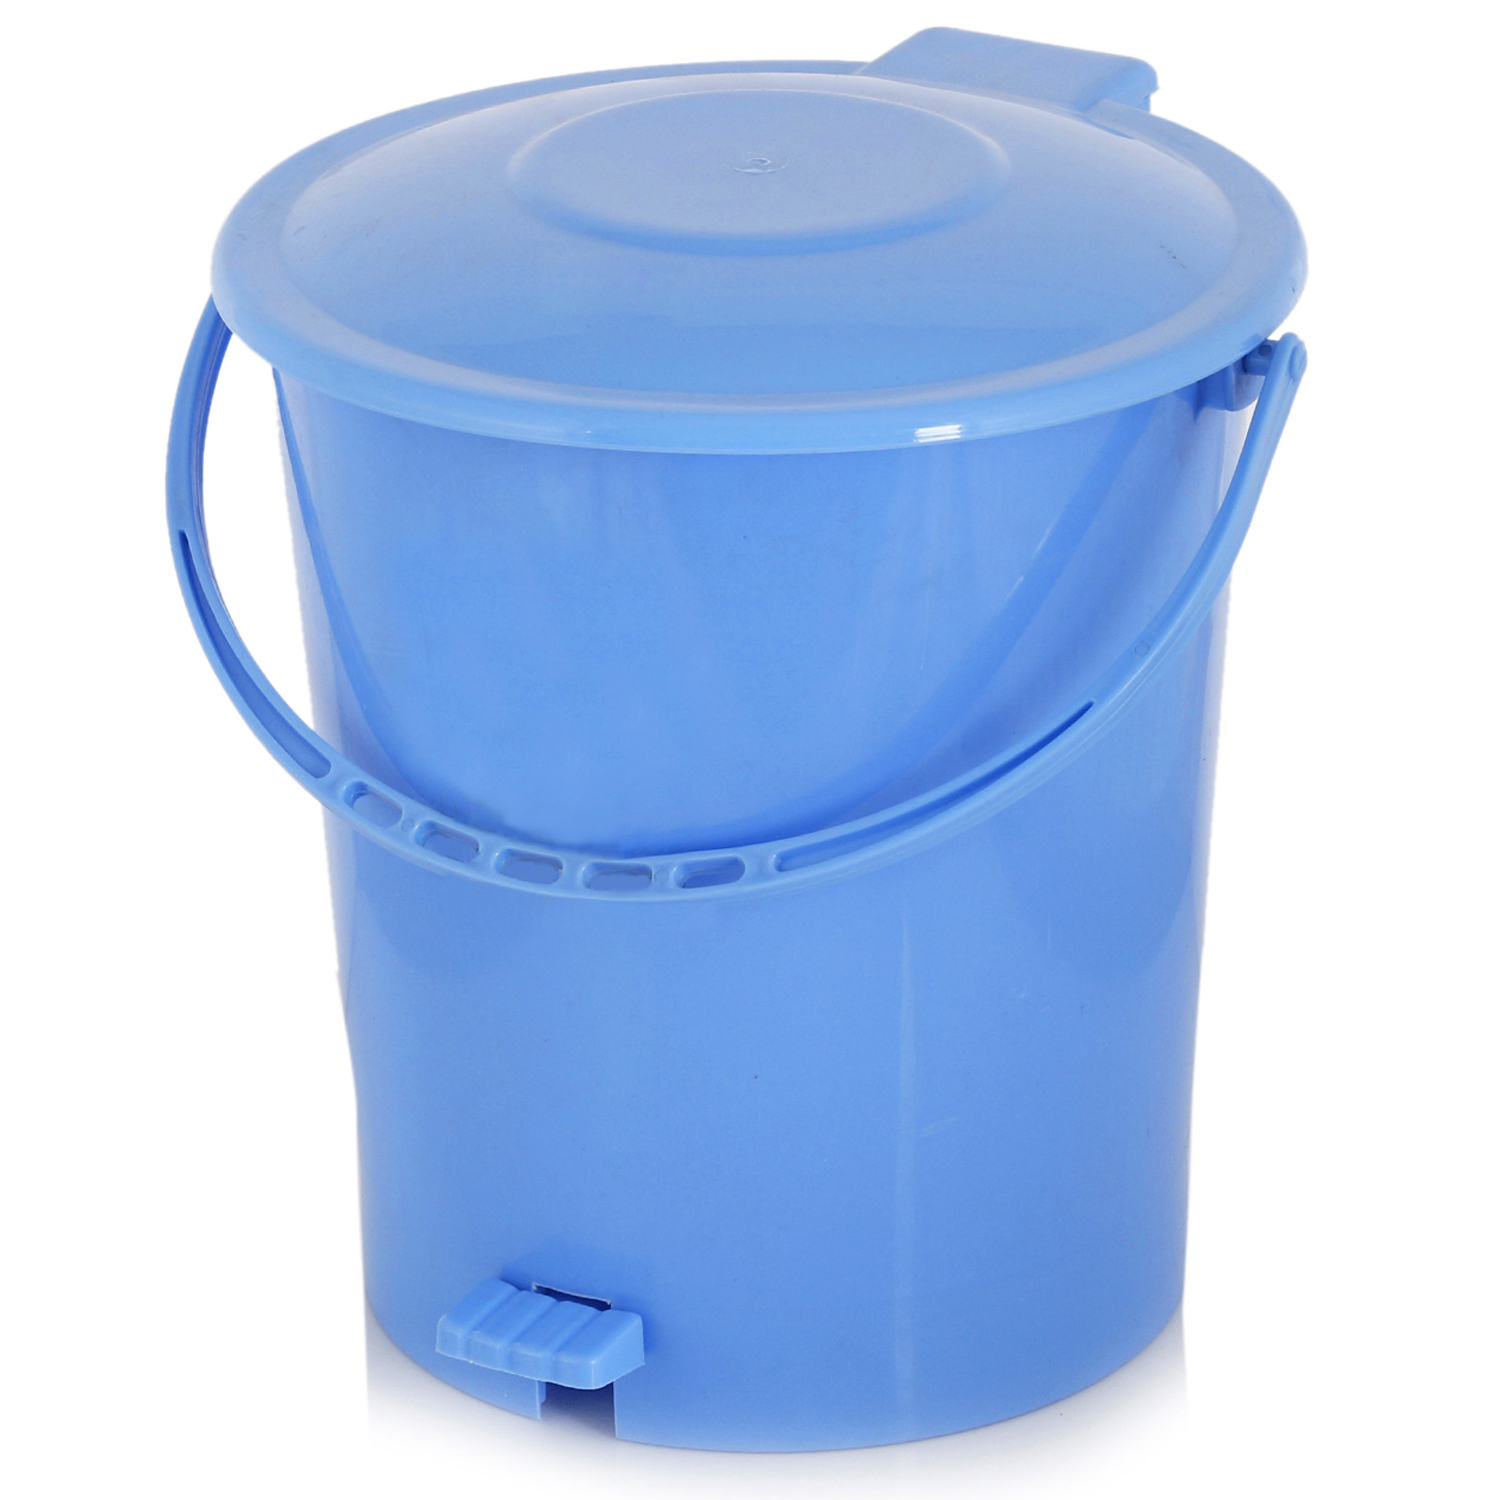 Kuber Industries 2 Pieces Plastic Dustbin Garbage Bin with Handle, 10 Liters (Blue) - CTKTC34632